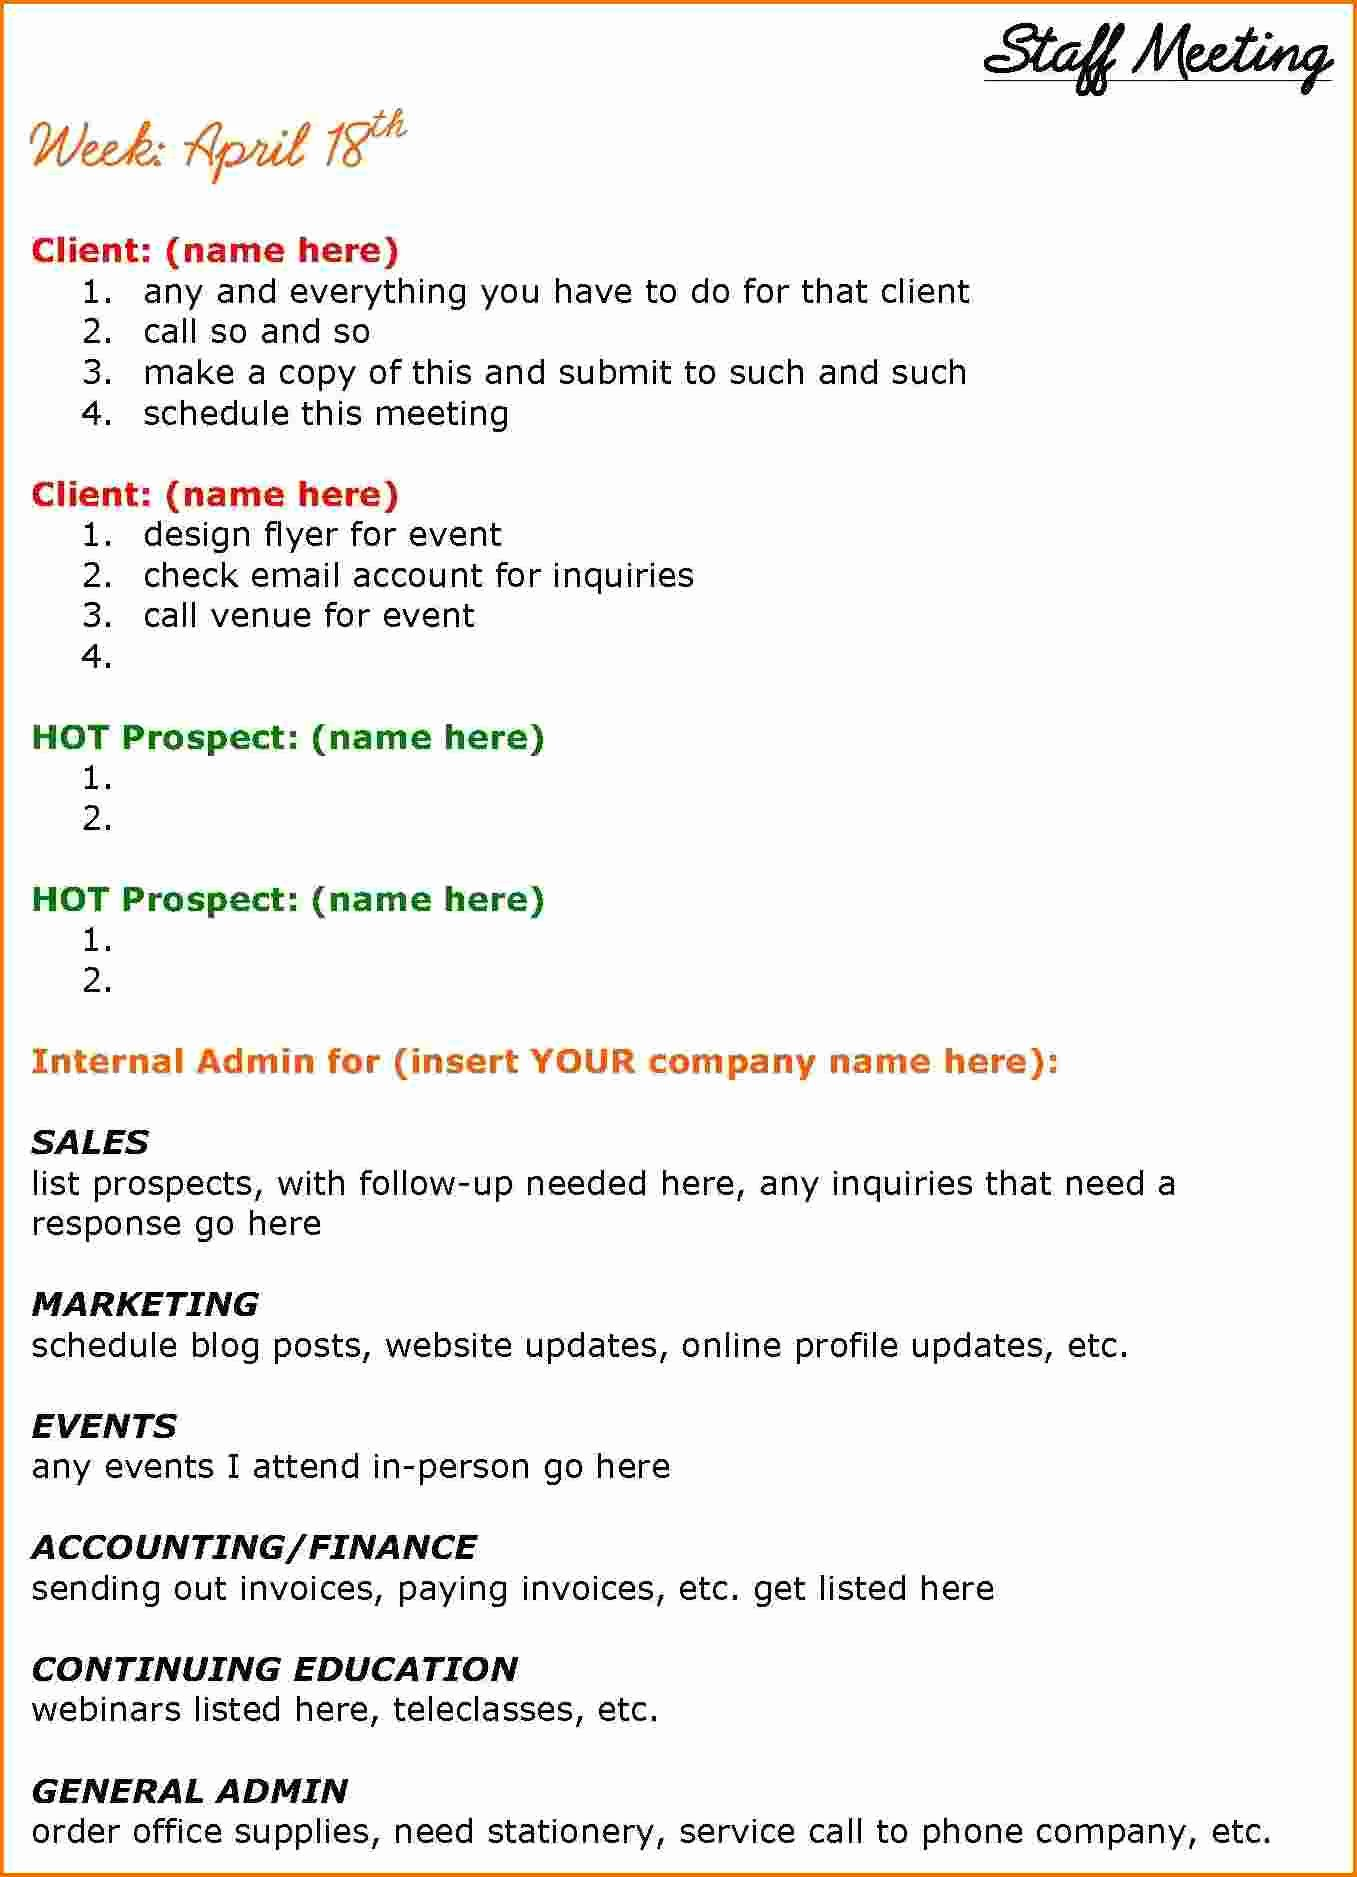 Staff Meeting Agenda Template Awesome 6 Staff Meeting Agenda Template